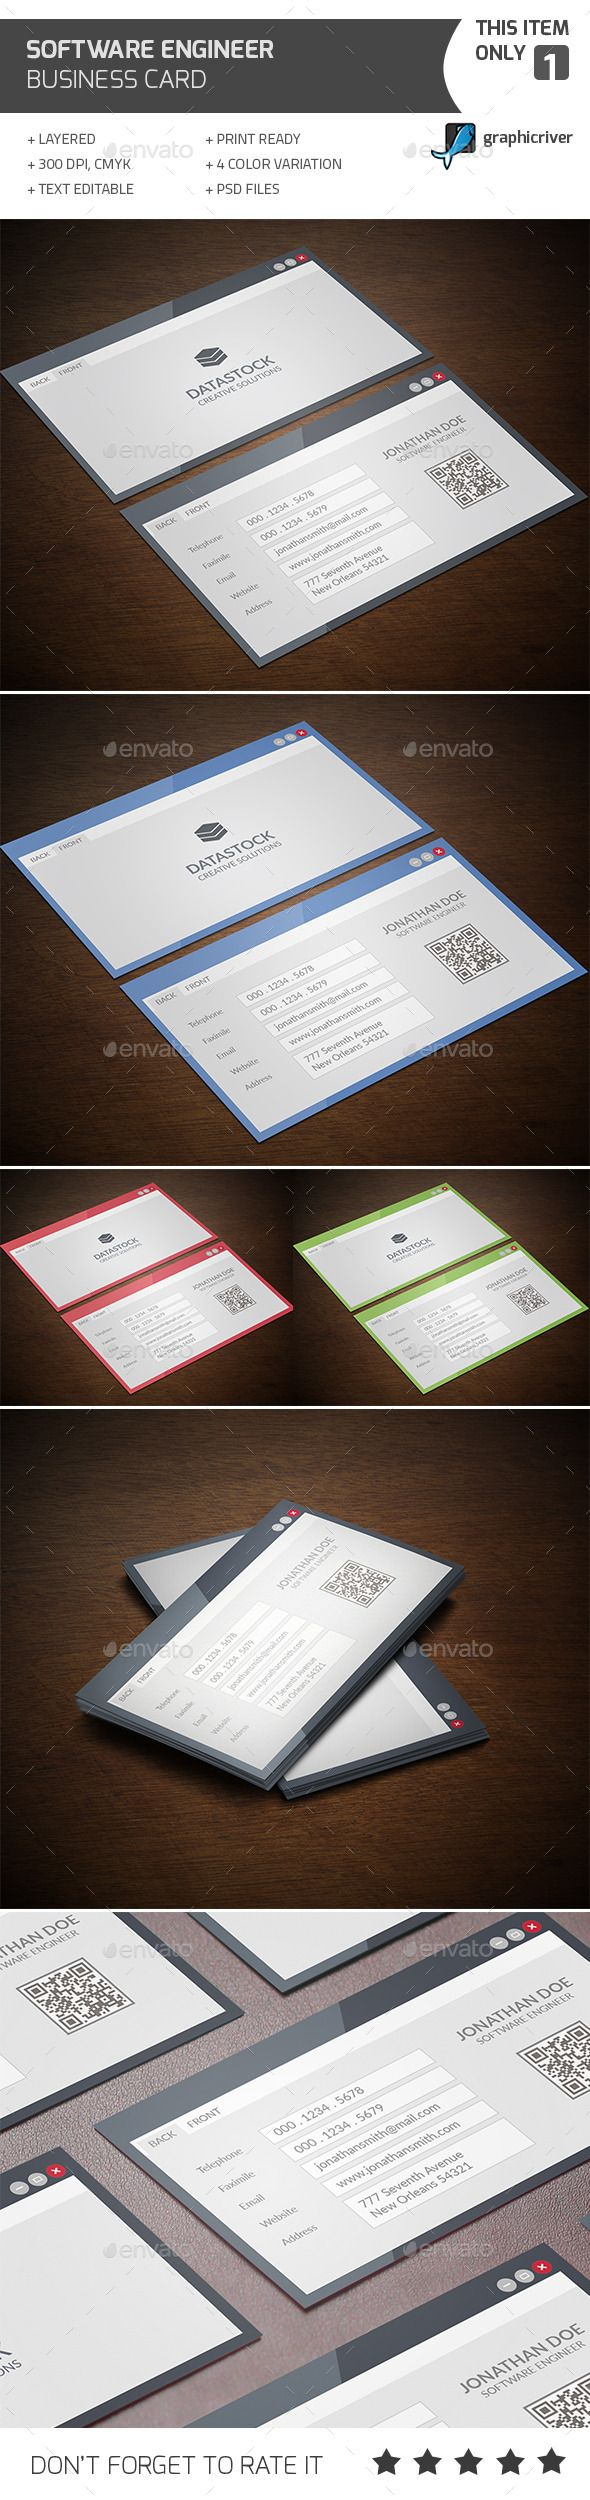 Funky free business card programs photo business card ideas free business card printer software download gallery card design reheart Image collections